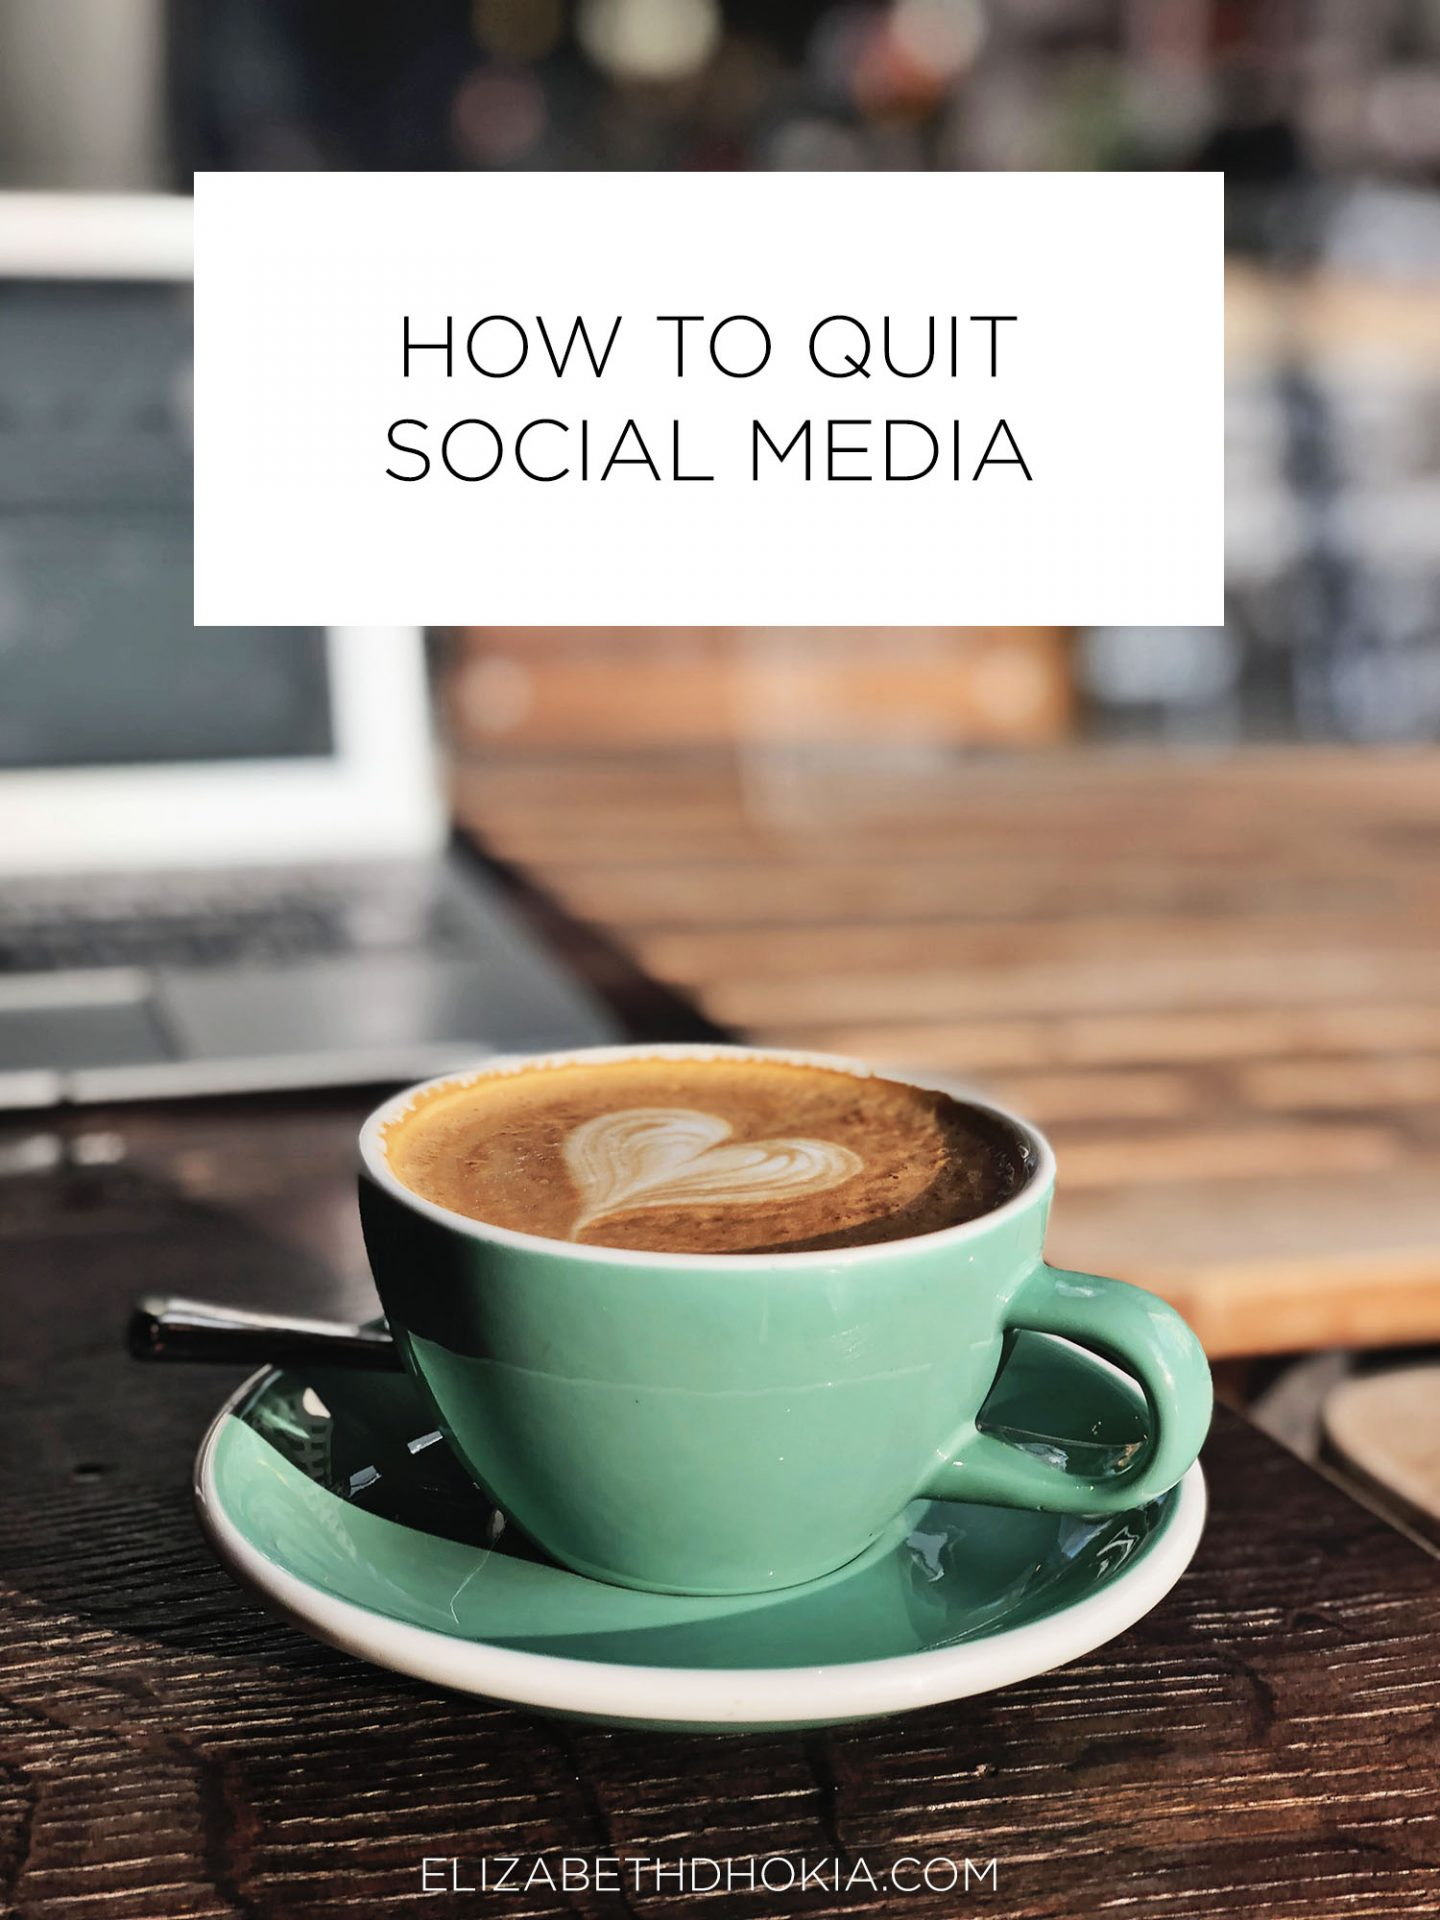 How to quit social media